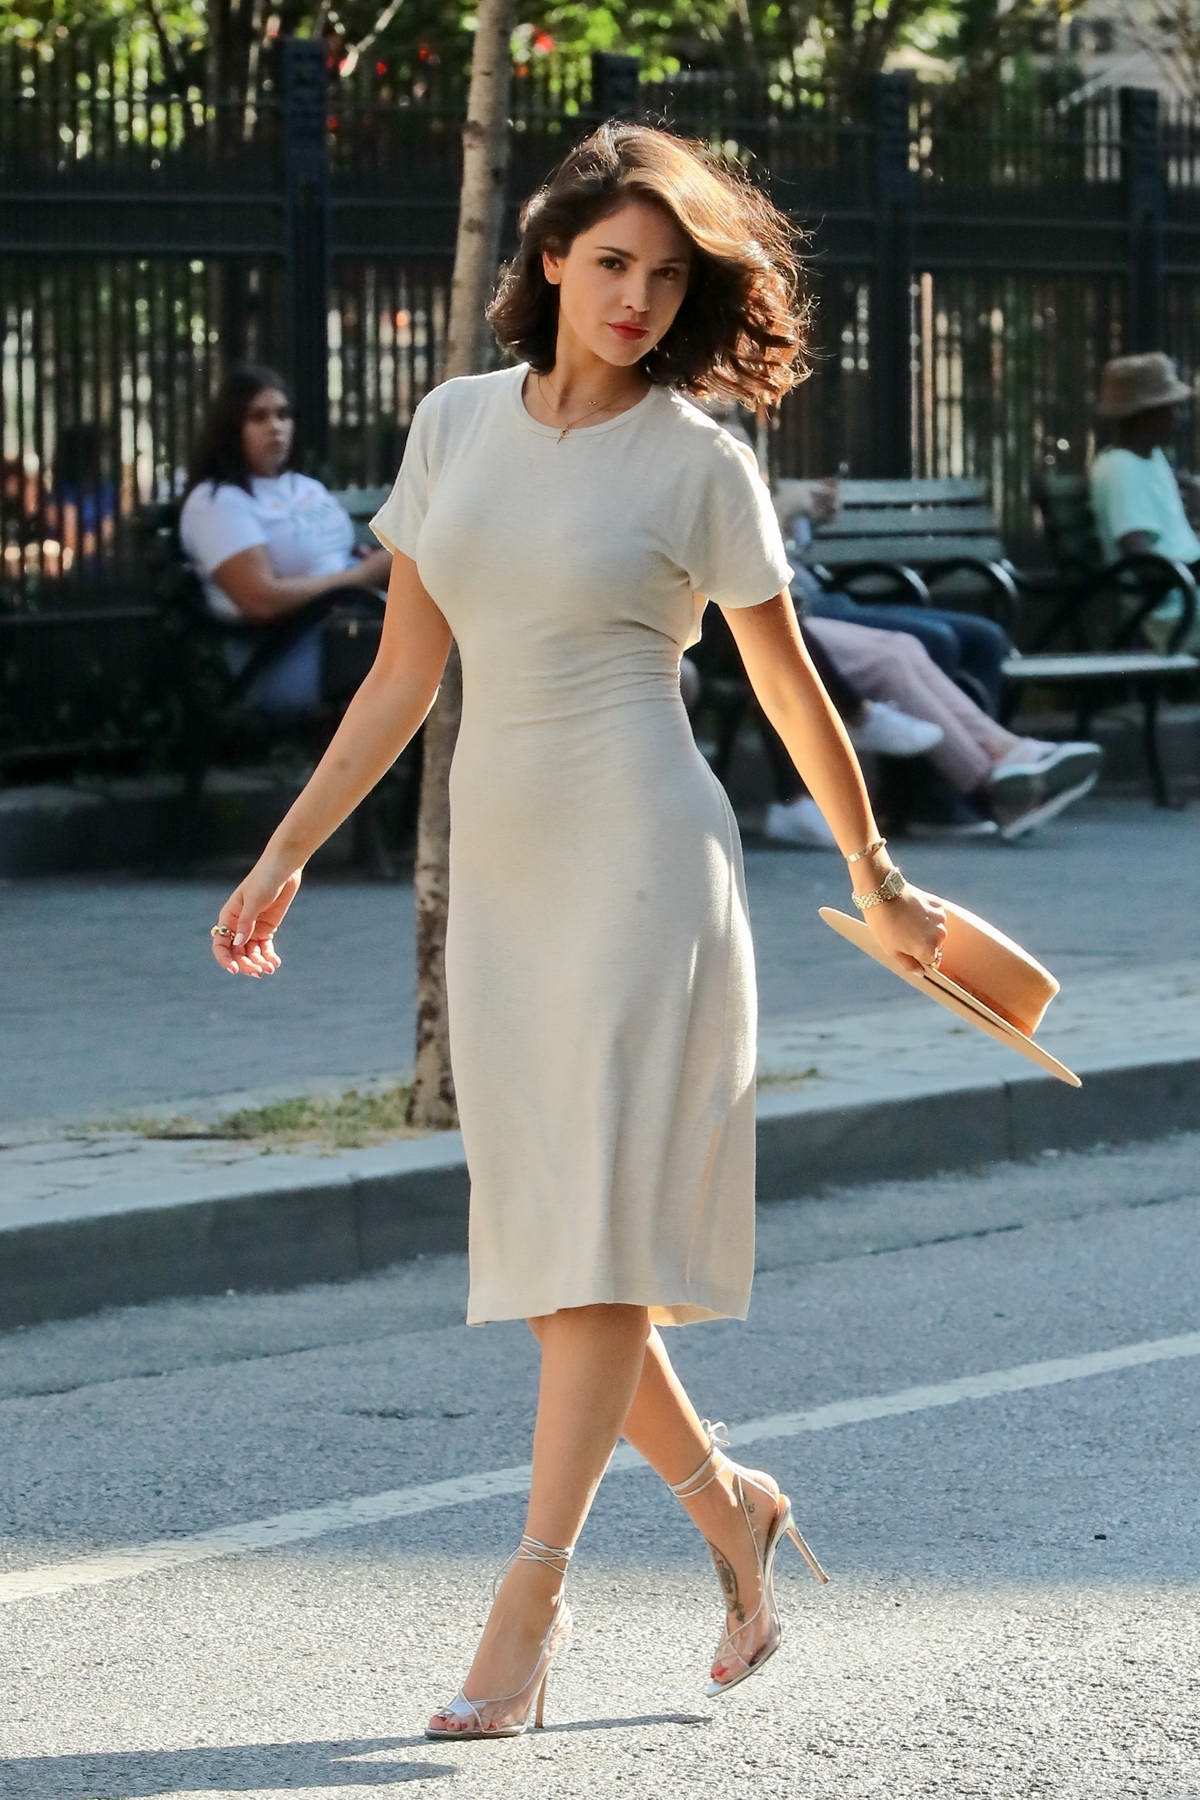 Eiza Gonzalez twirls a hat during a casual photoshoot on the streets of SoHo in New York City